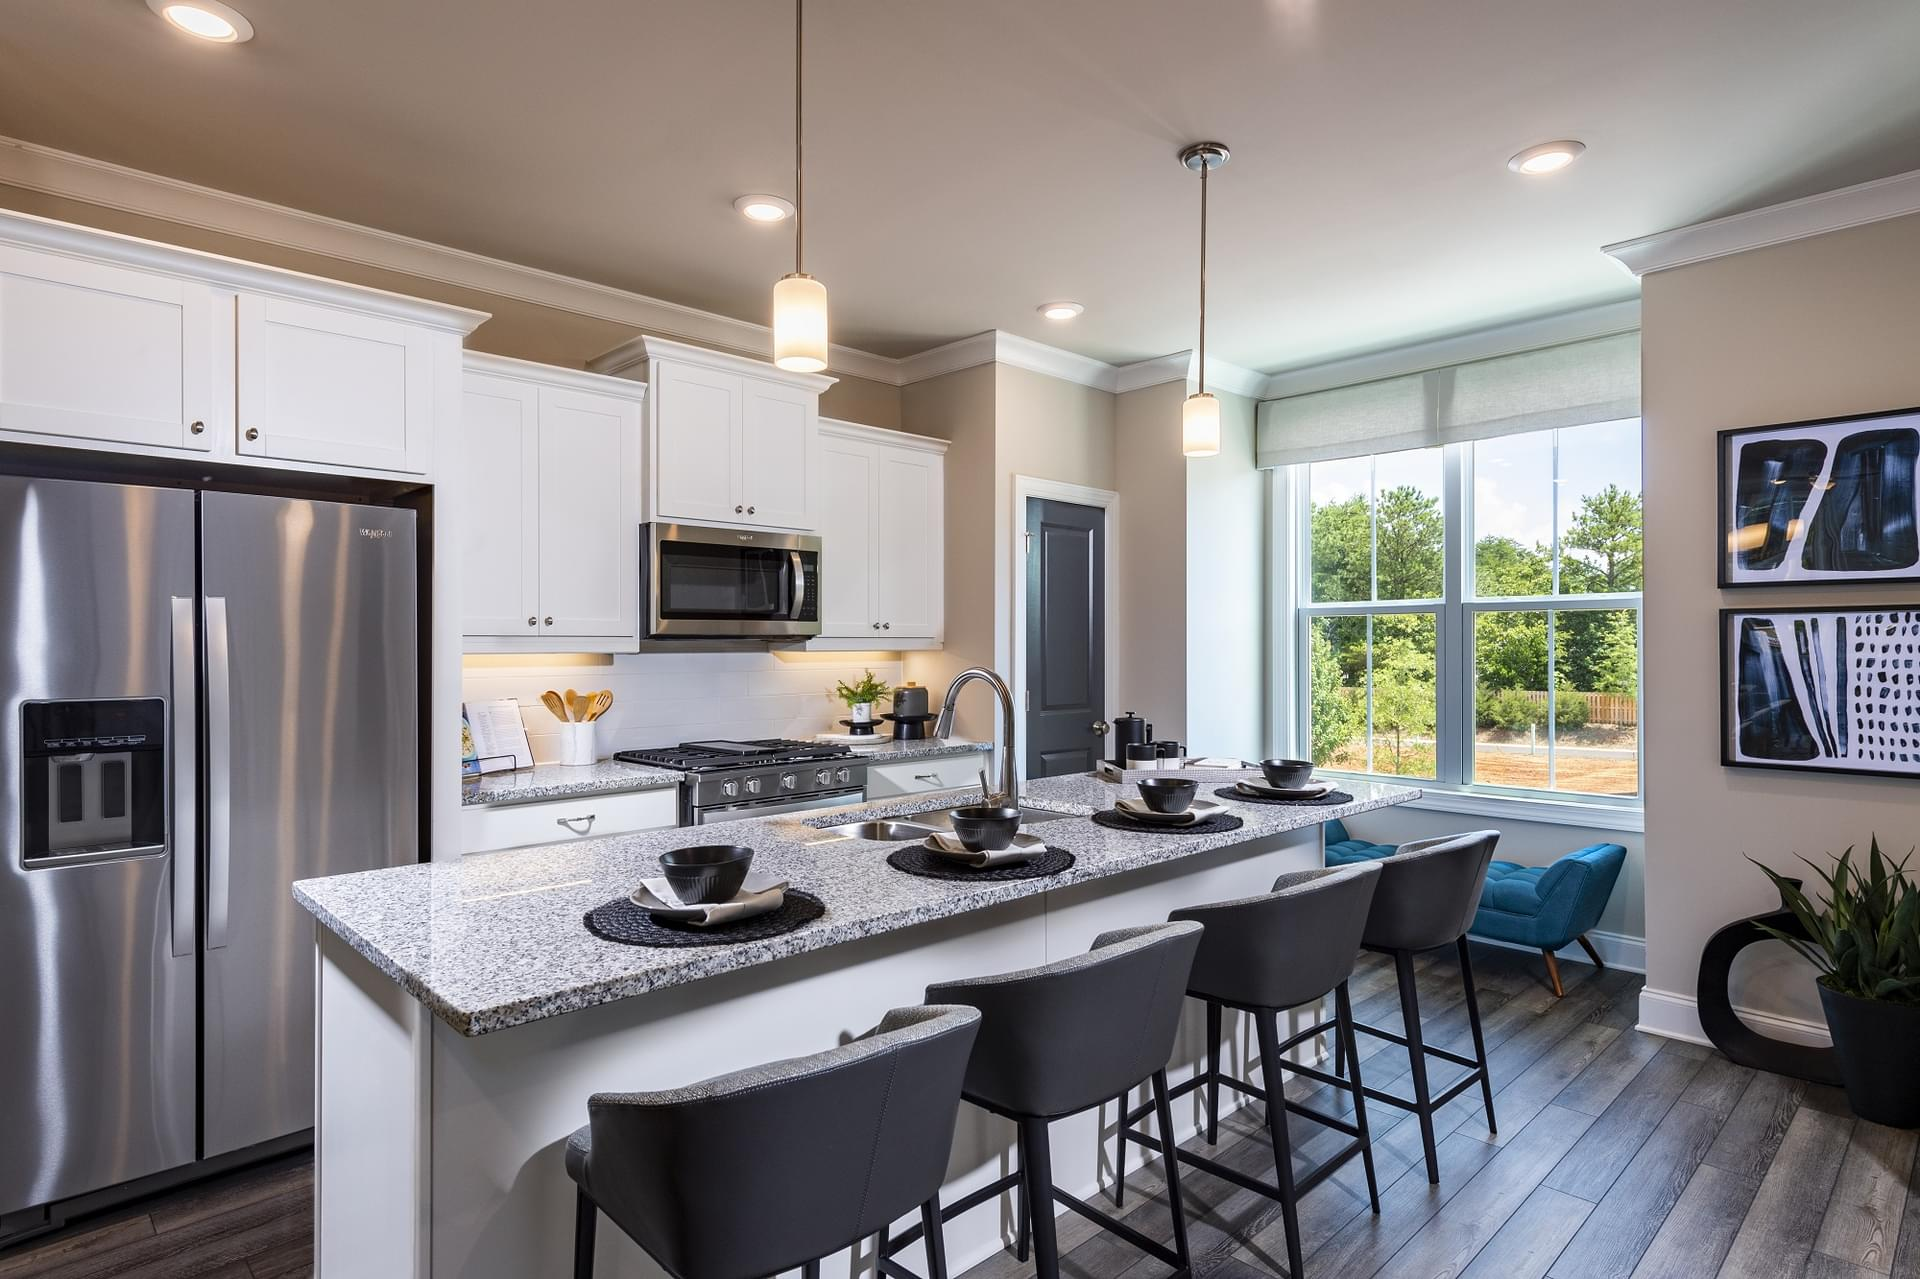 Save $7K+ in Closing Costs on New DeKalb County Townhomes*